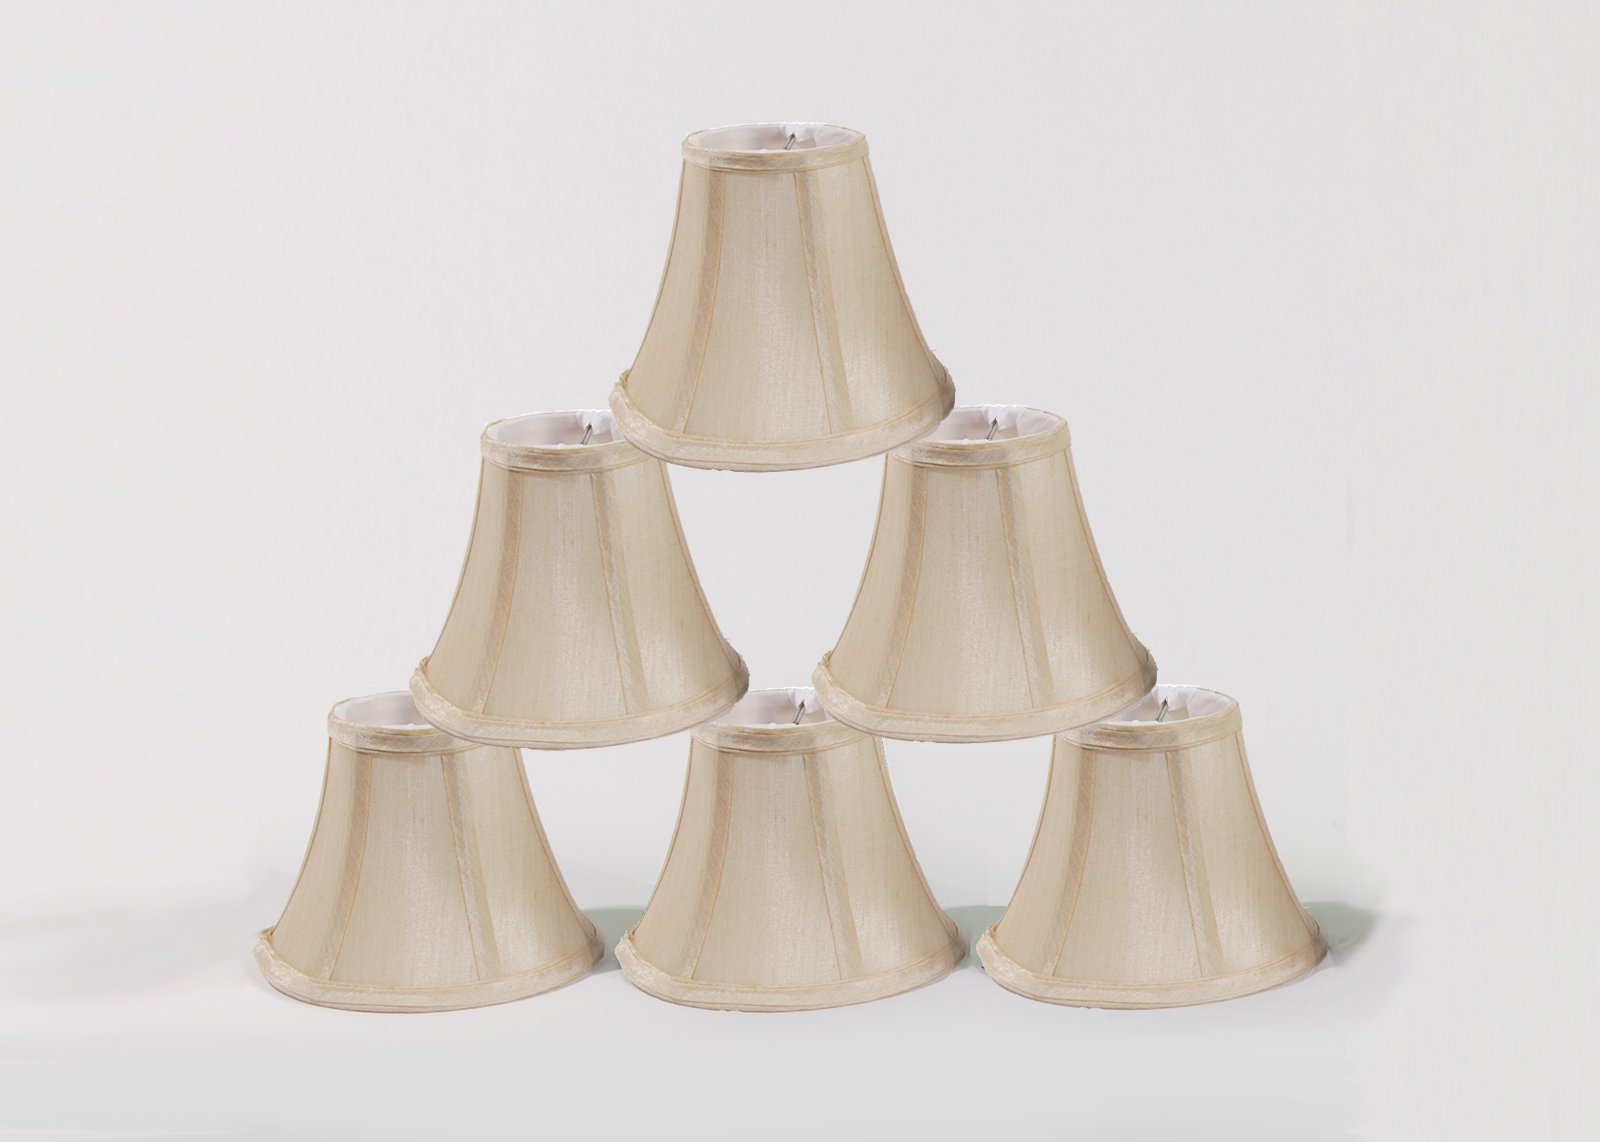 Urbanest Chandelier Lamp Shades, Set of 6, Soft Bell 3''x 6''x 5'' Cream , Clip on